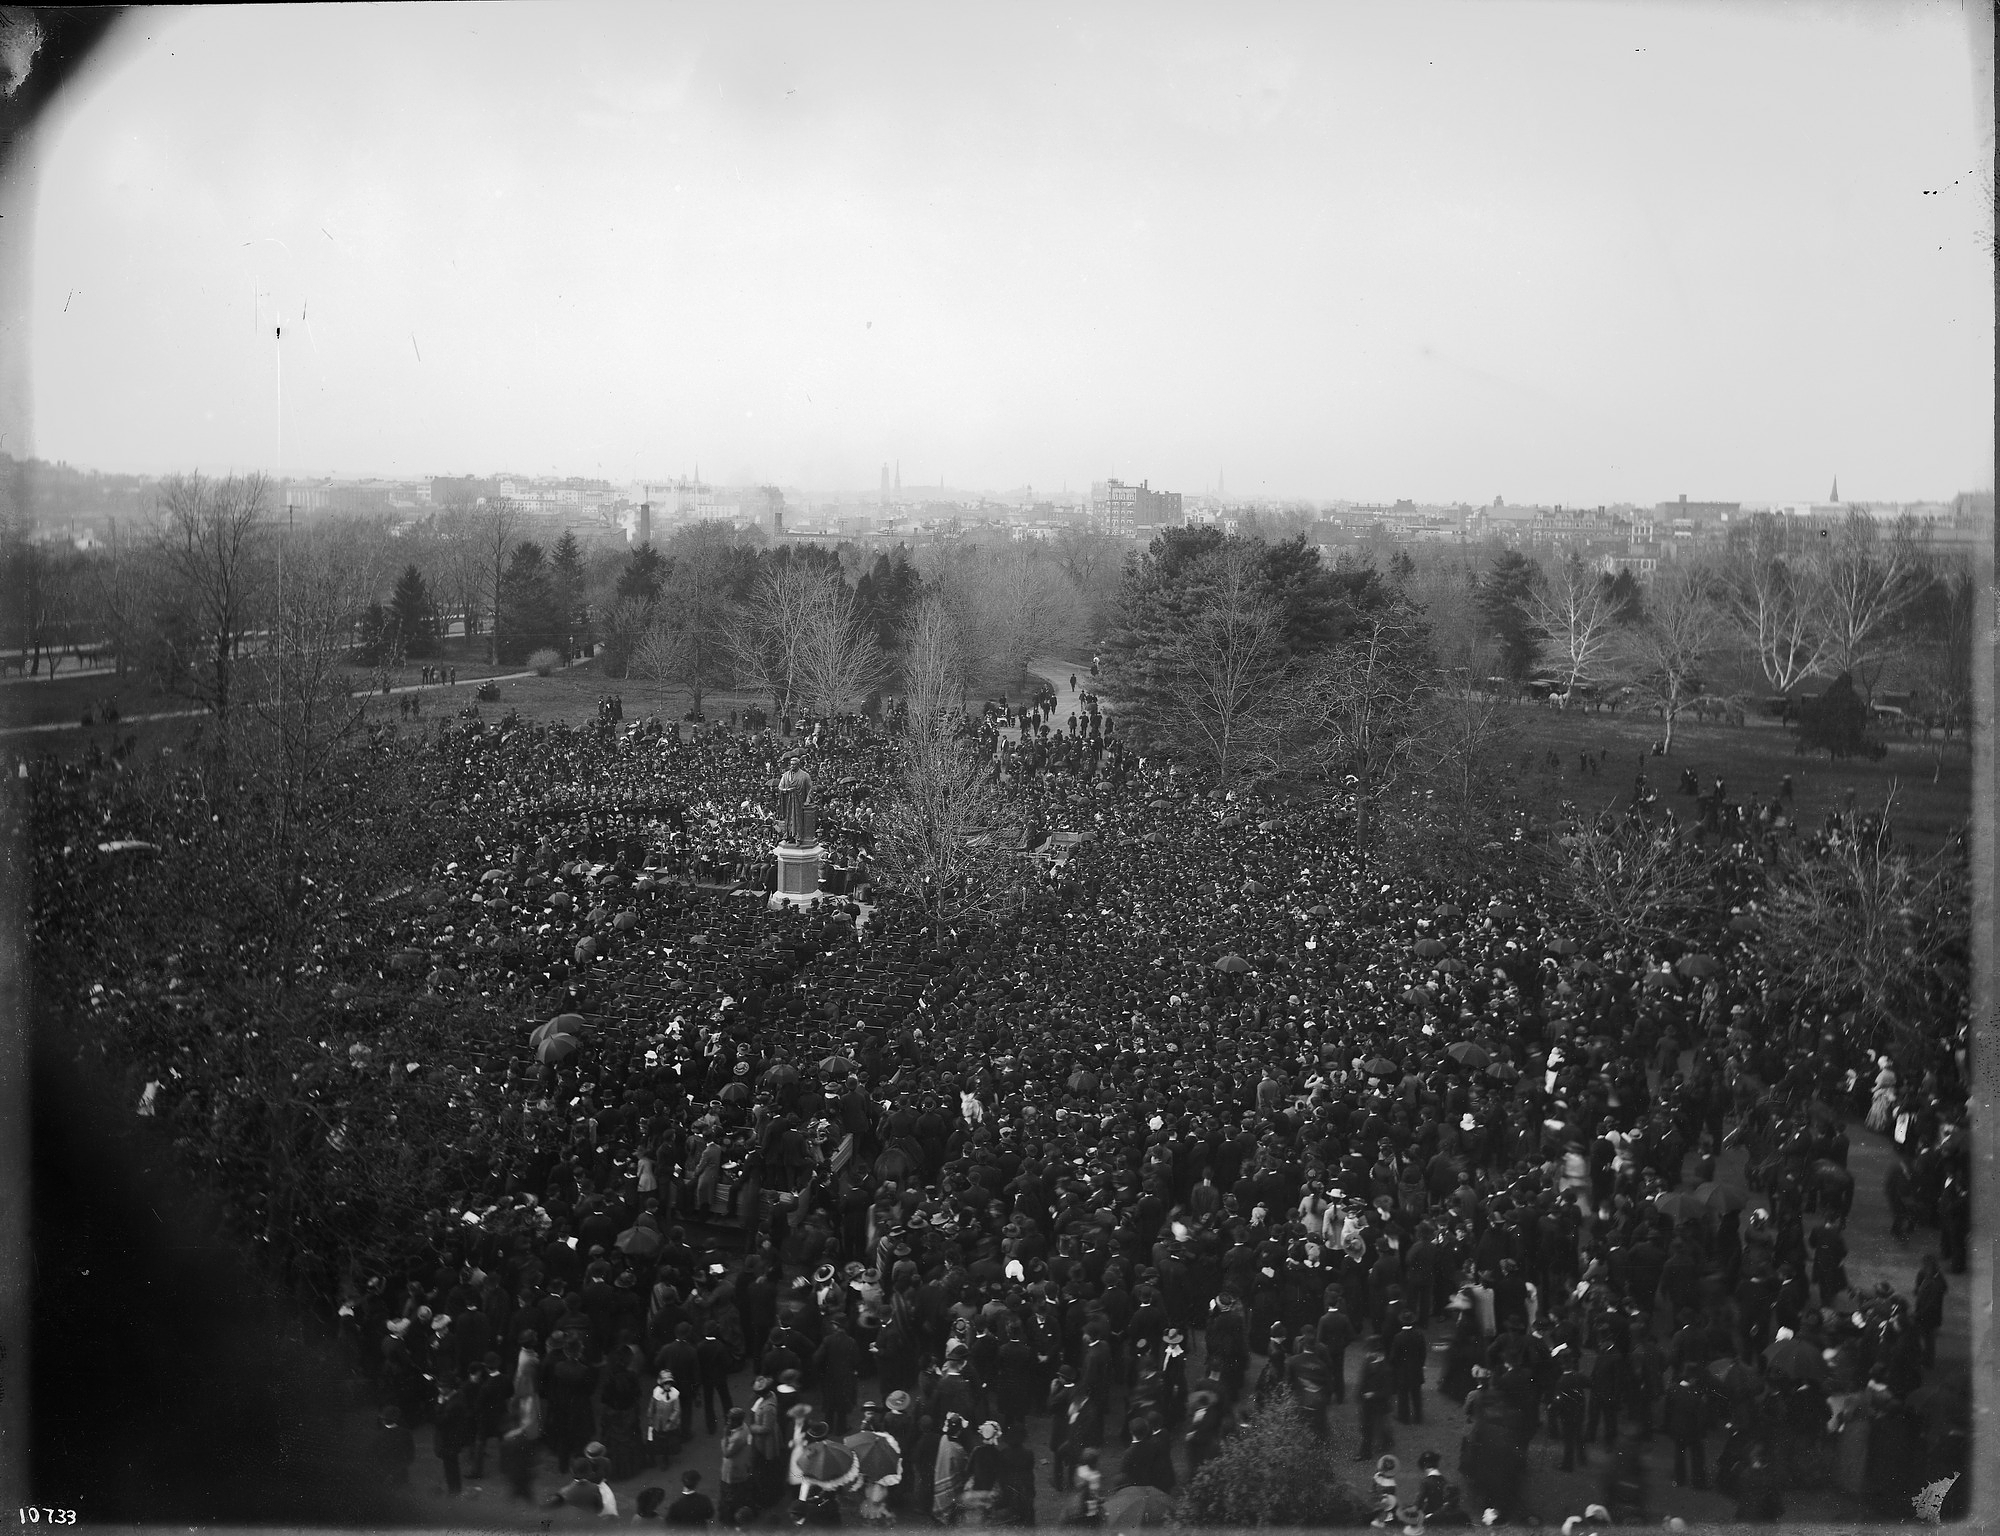 This photo, taken through a window in the Castle, captures the crowds that gathered for the Joseph Henry statue dedication in 1883. Courtesy of the Smithsonian Institution Archives.